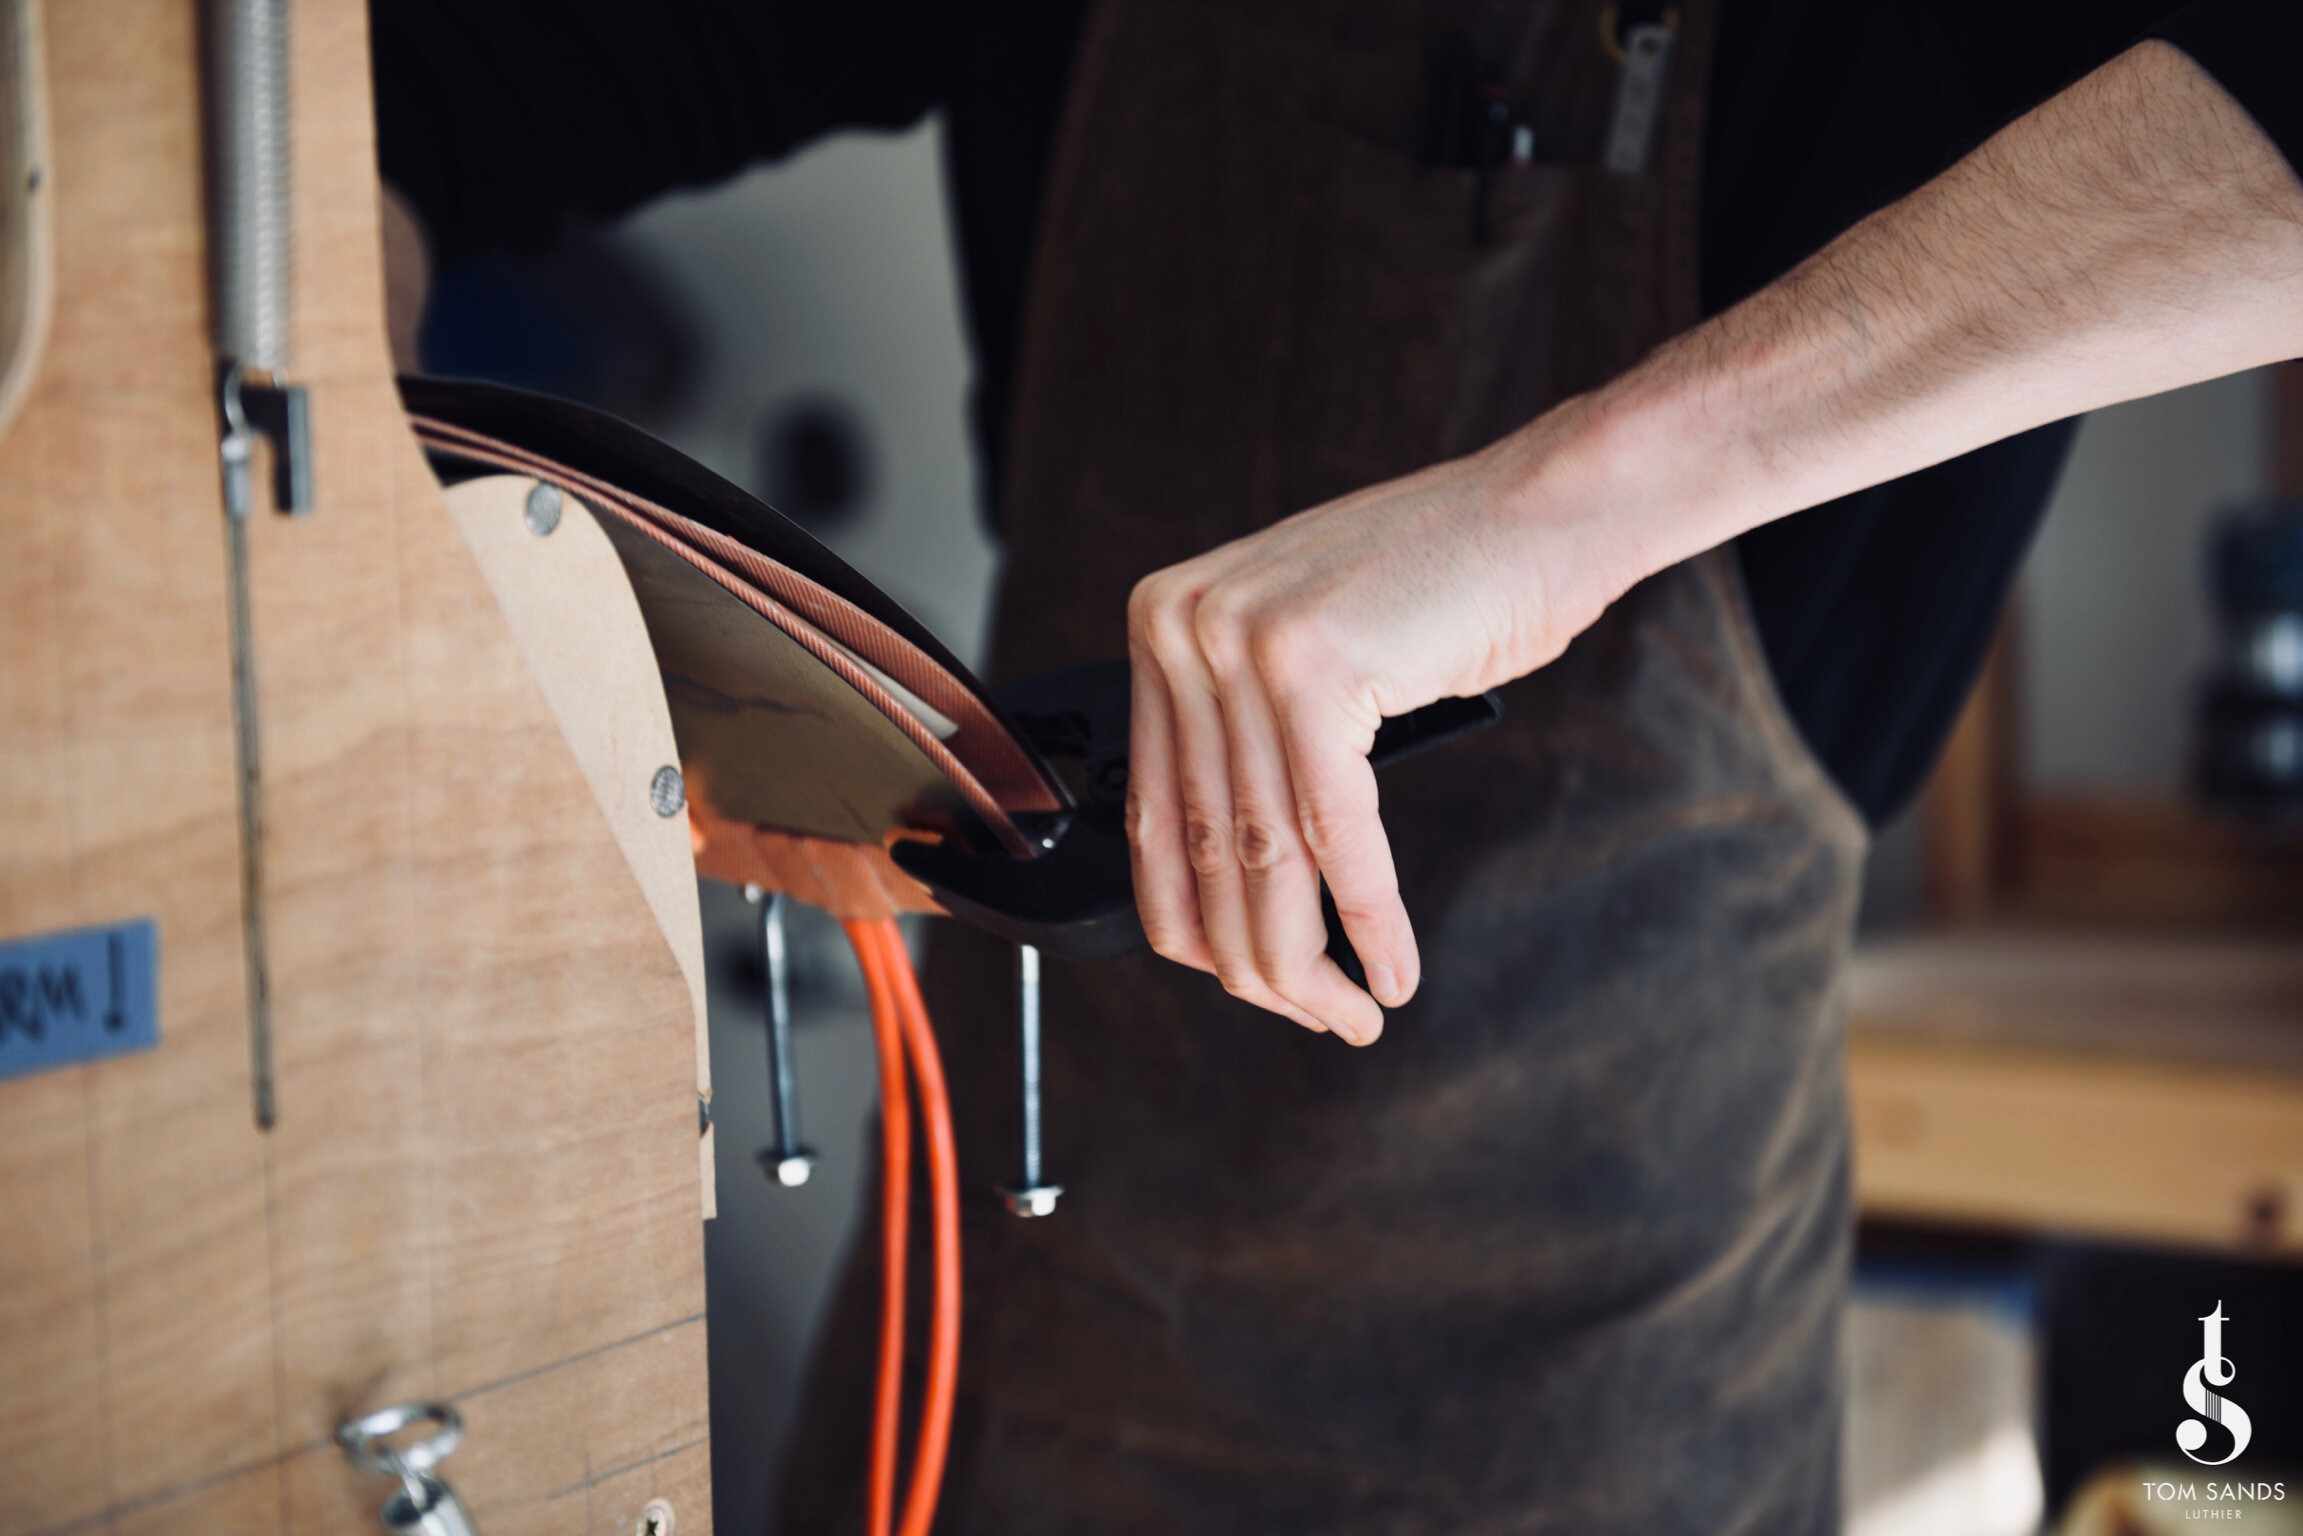 Bending the Cocobolo, armed with paper towel and alcohol (not to drink - we definitely don't advise that.)